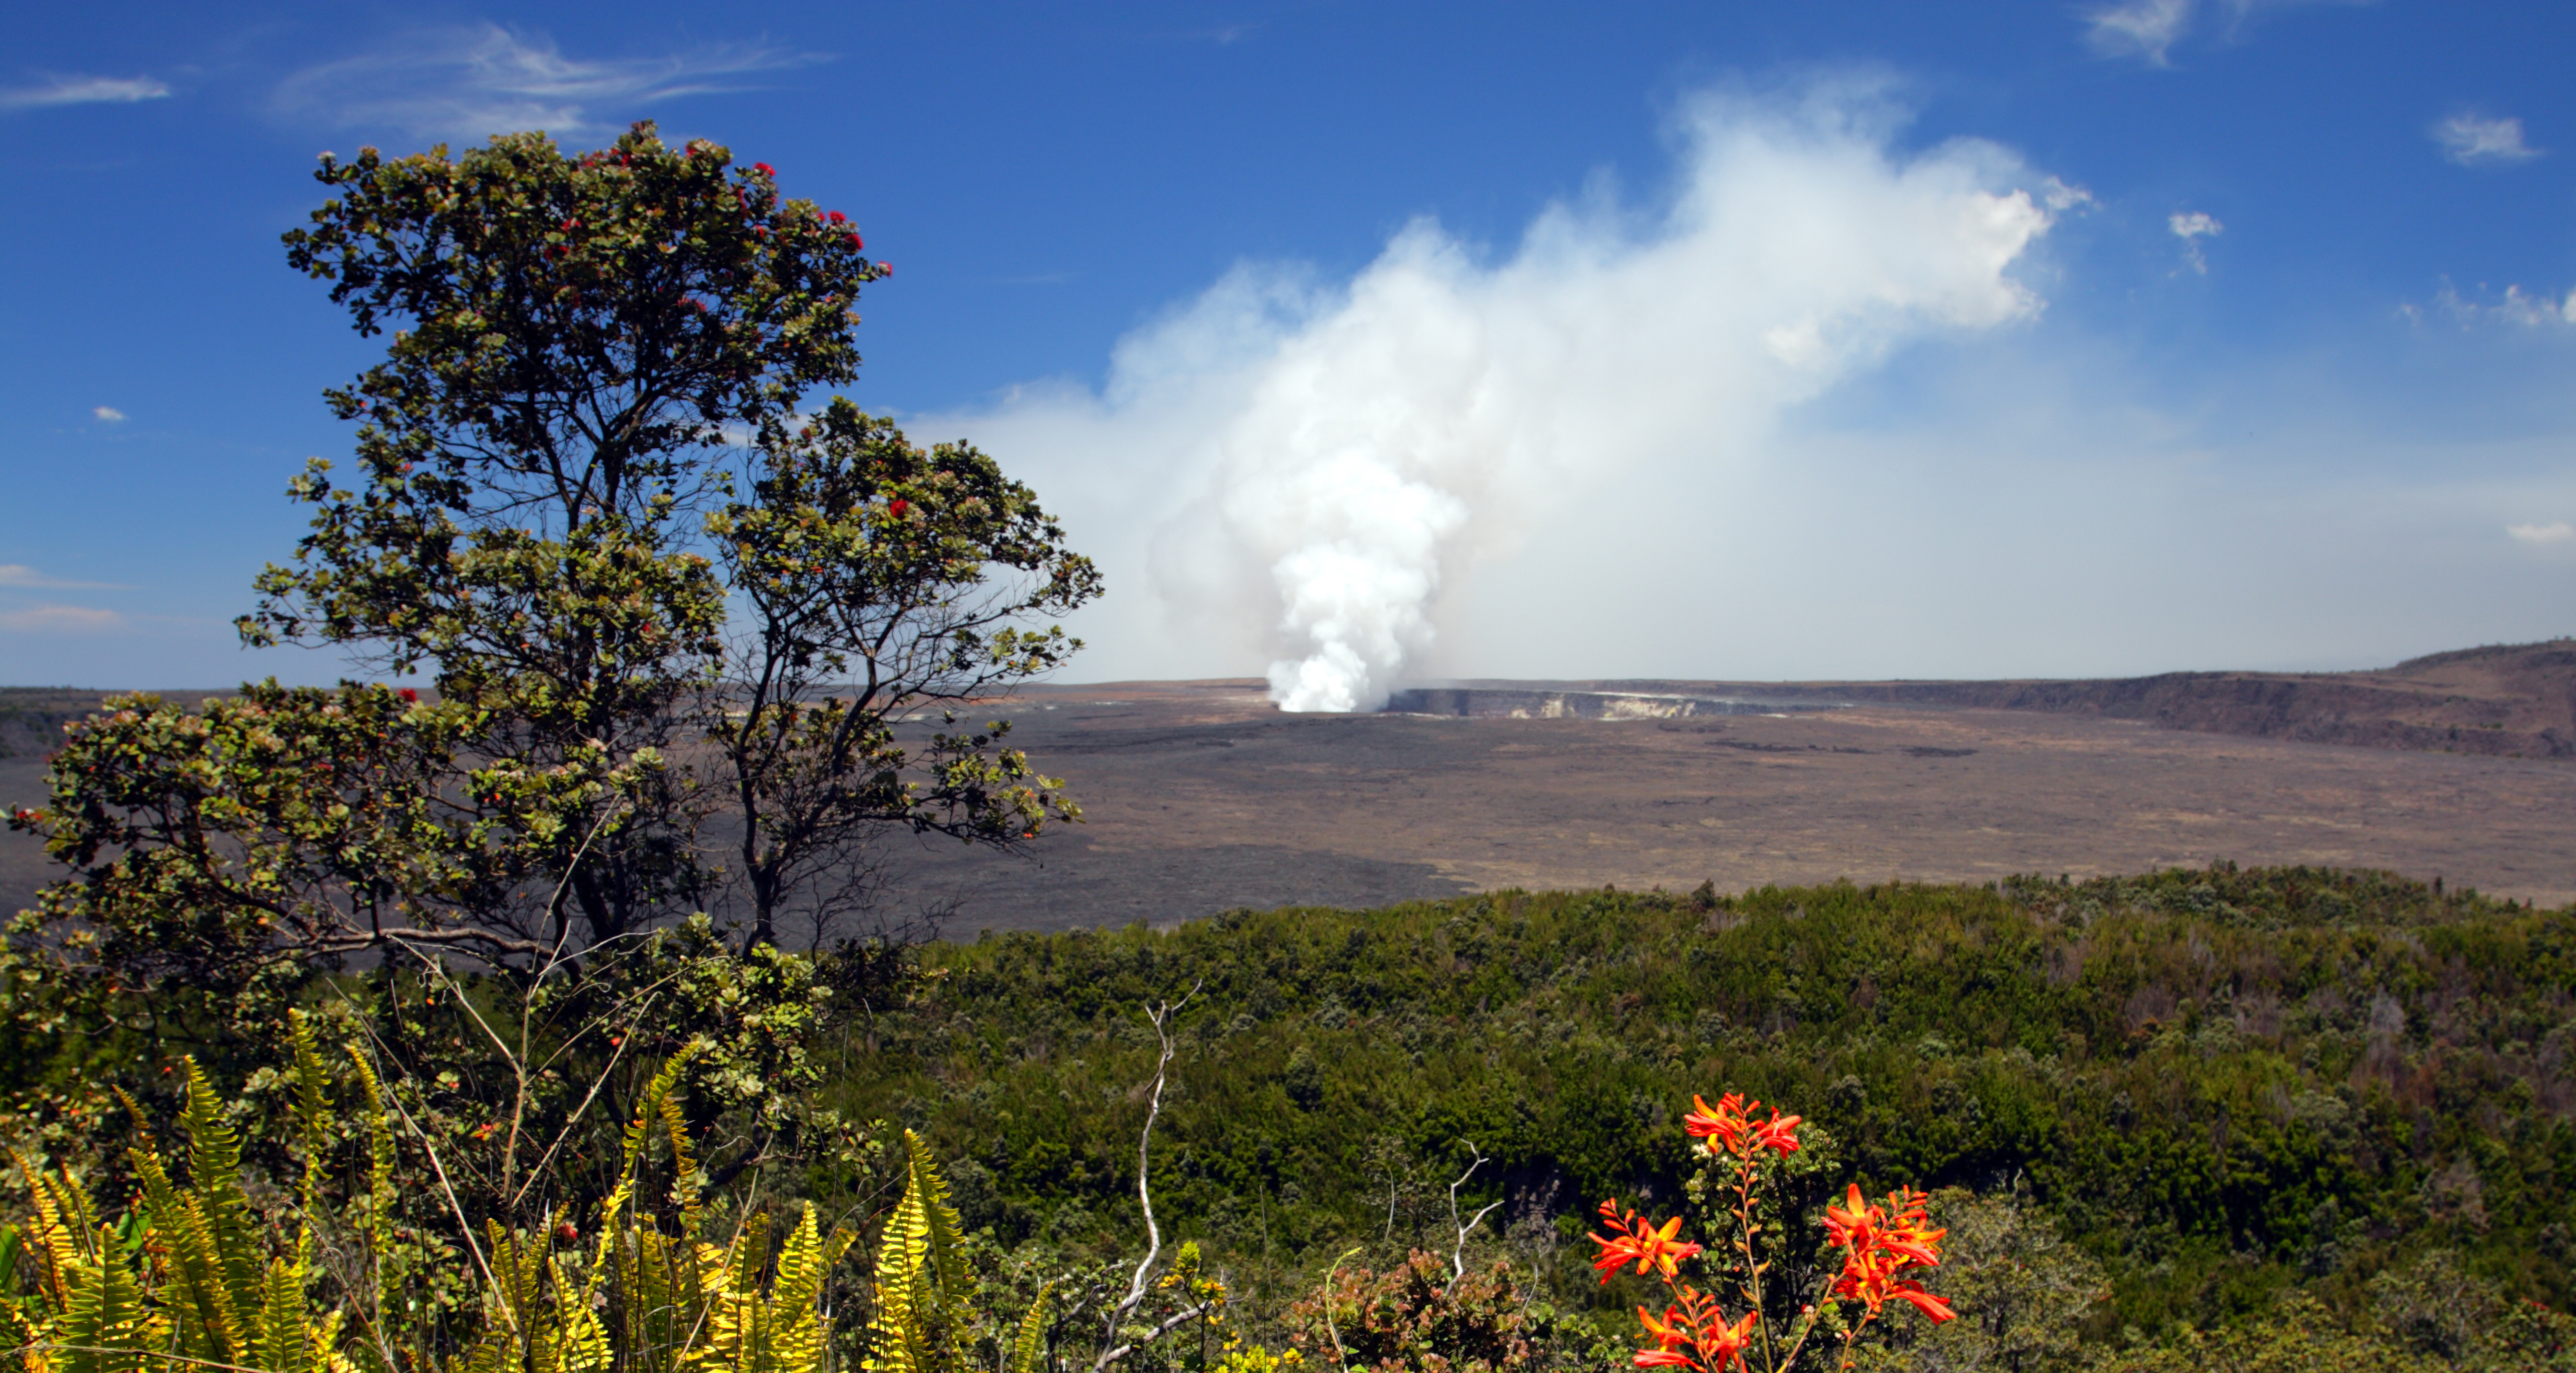 The steamy plume of a volcano rises in the distance over the Hawaiian landscape